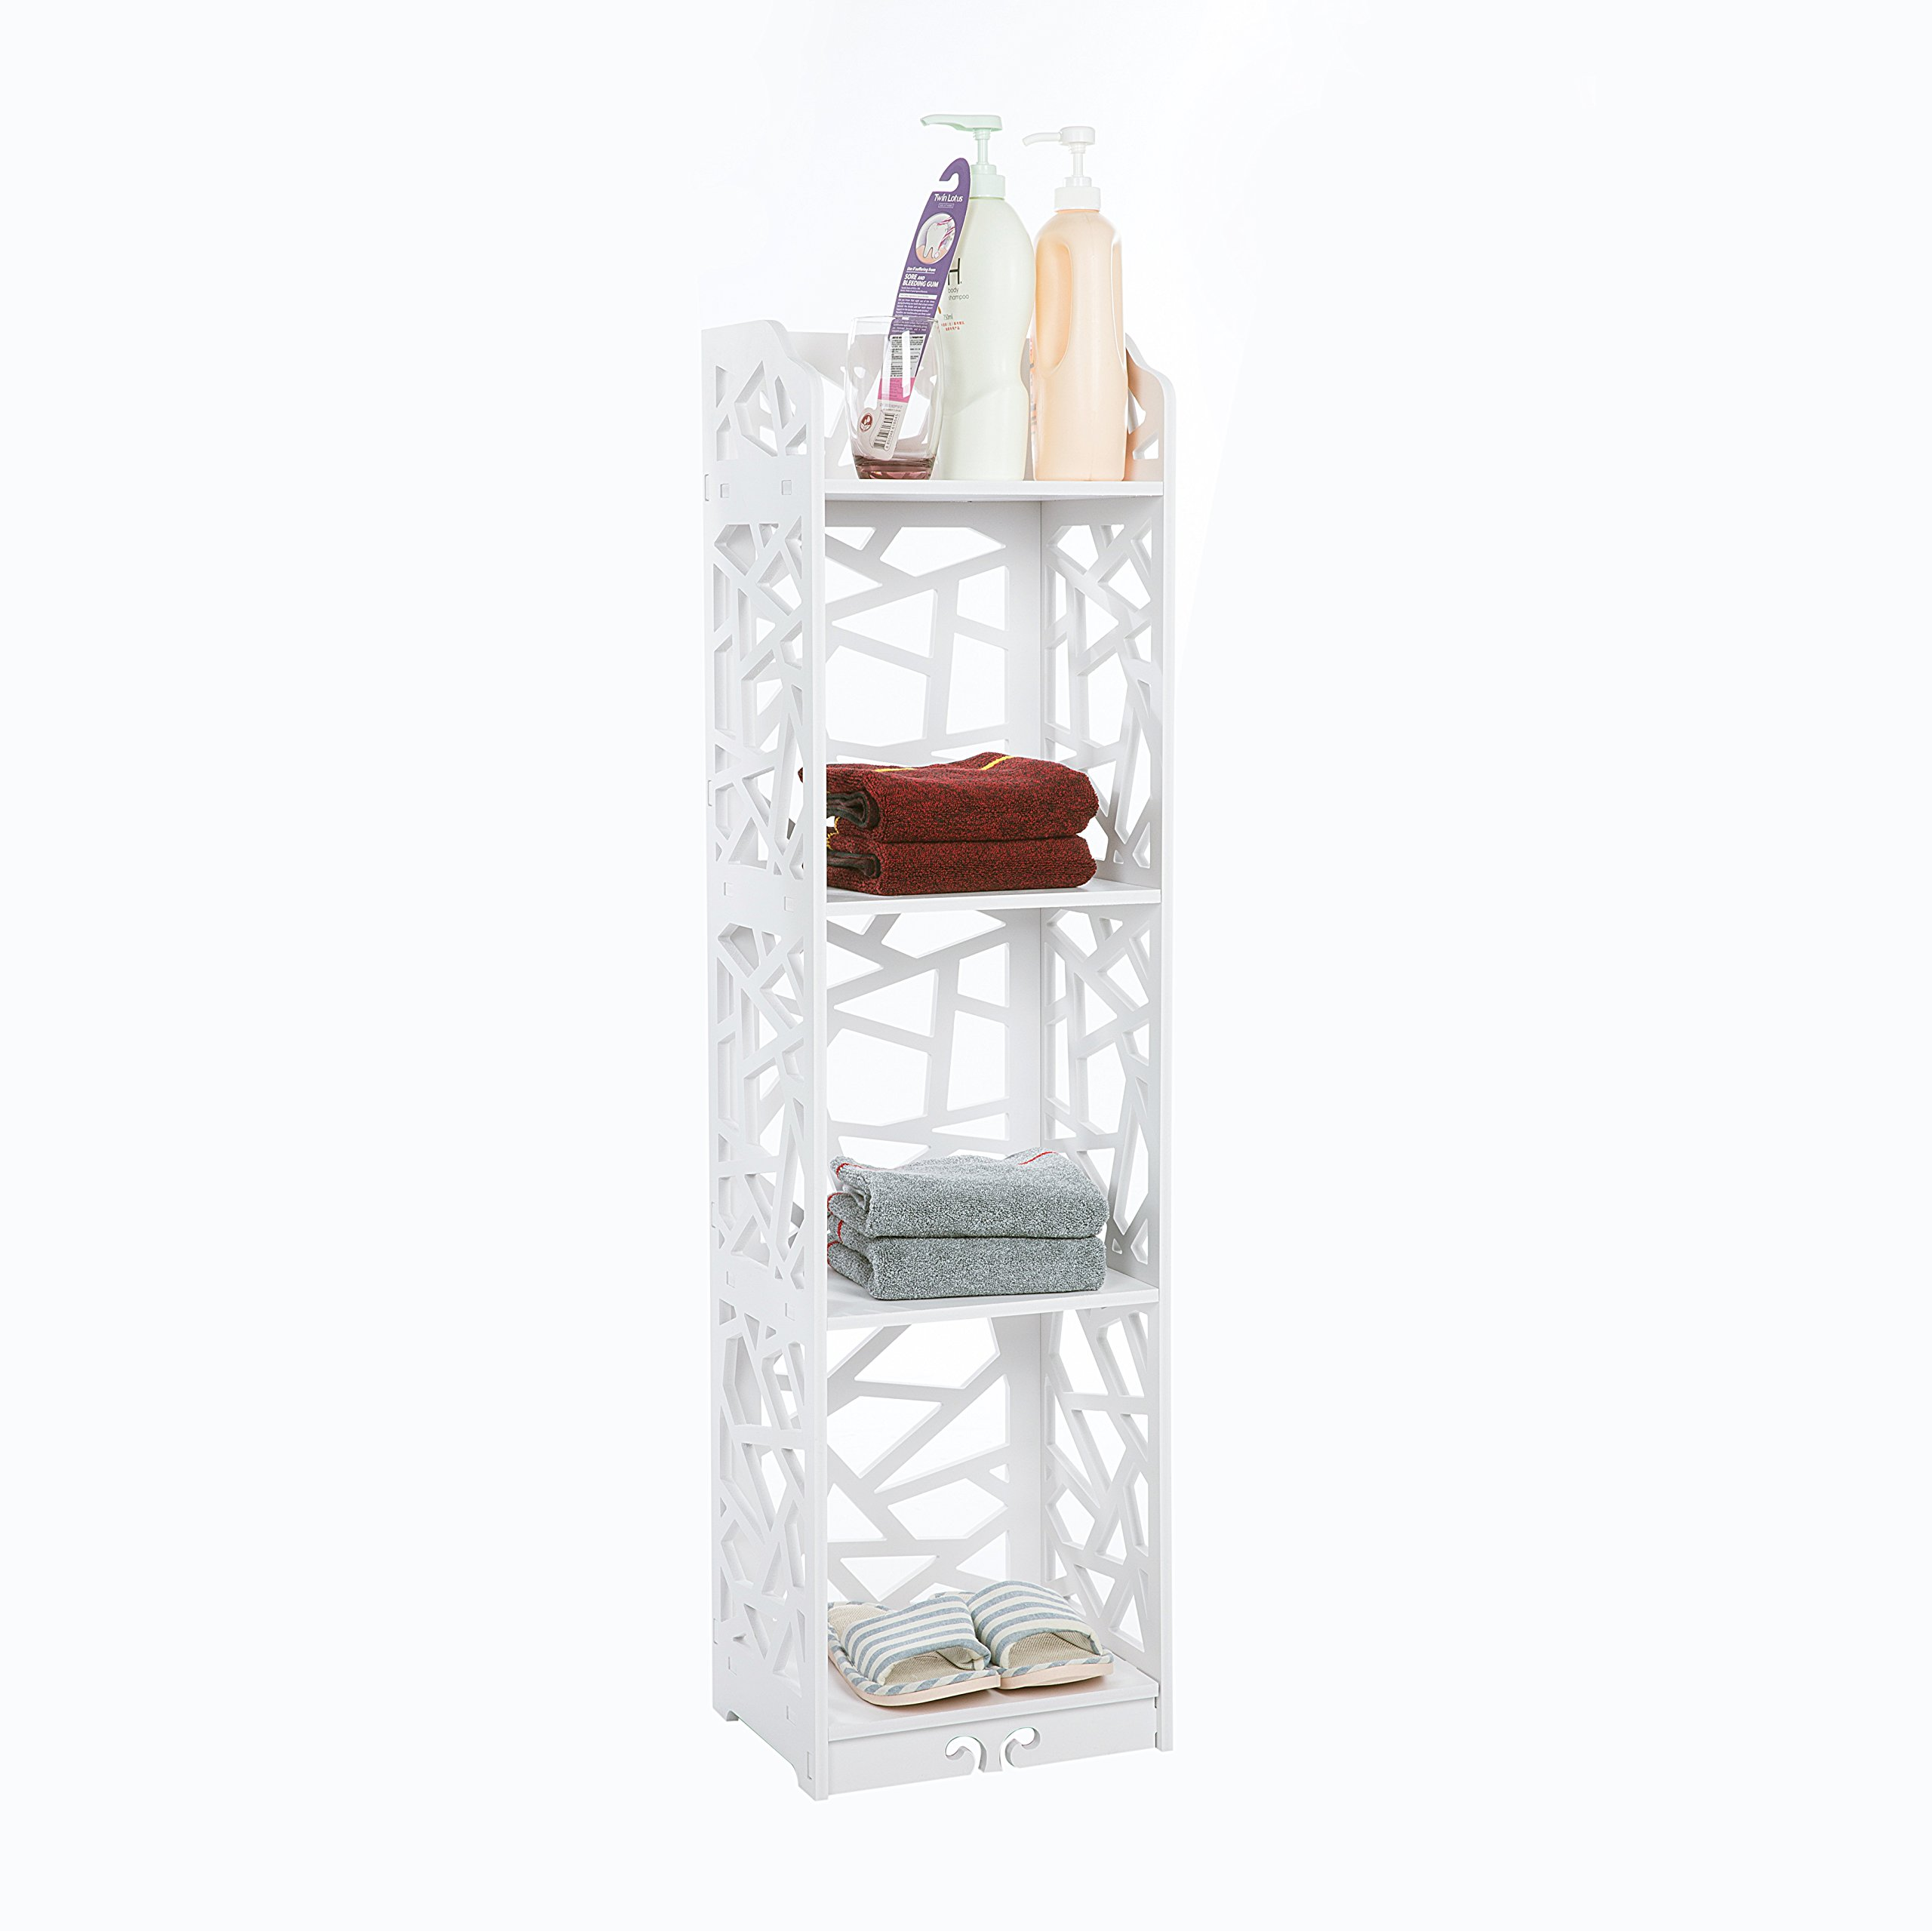 C&AHOME 4-Tier Bathroom Storage Shelf Units Bookcase Made from Fireproof Compsite of Wood & Plasitc